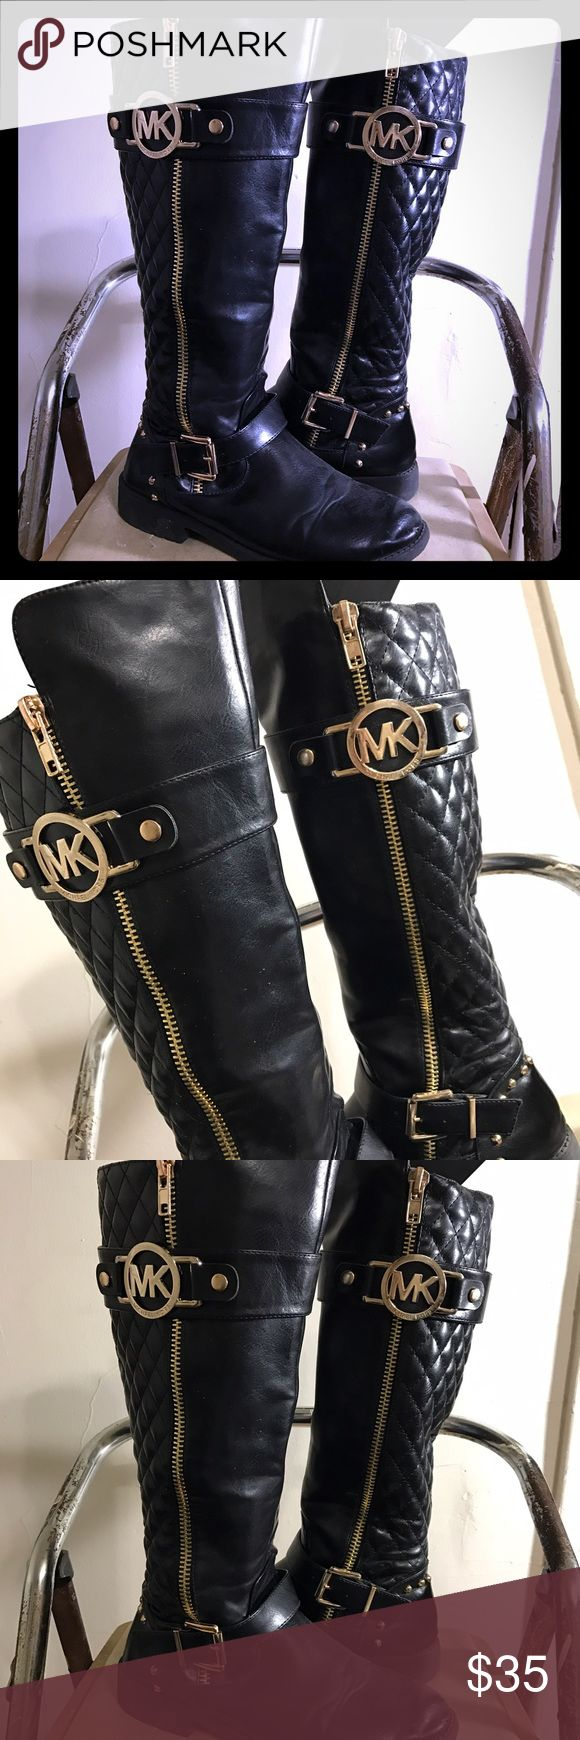 MK Boots Good condition broken zipper in inside can be fixed easily reduced price! Michael Kors Shoes Over the Knee Boots